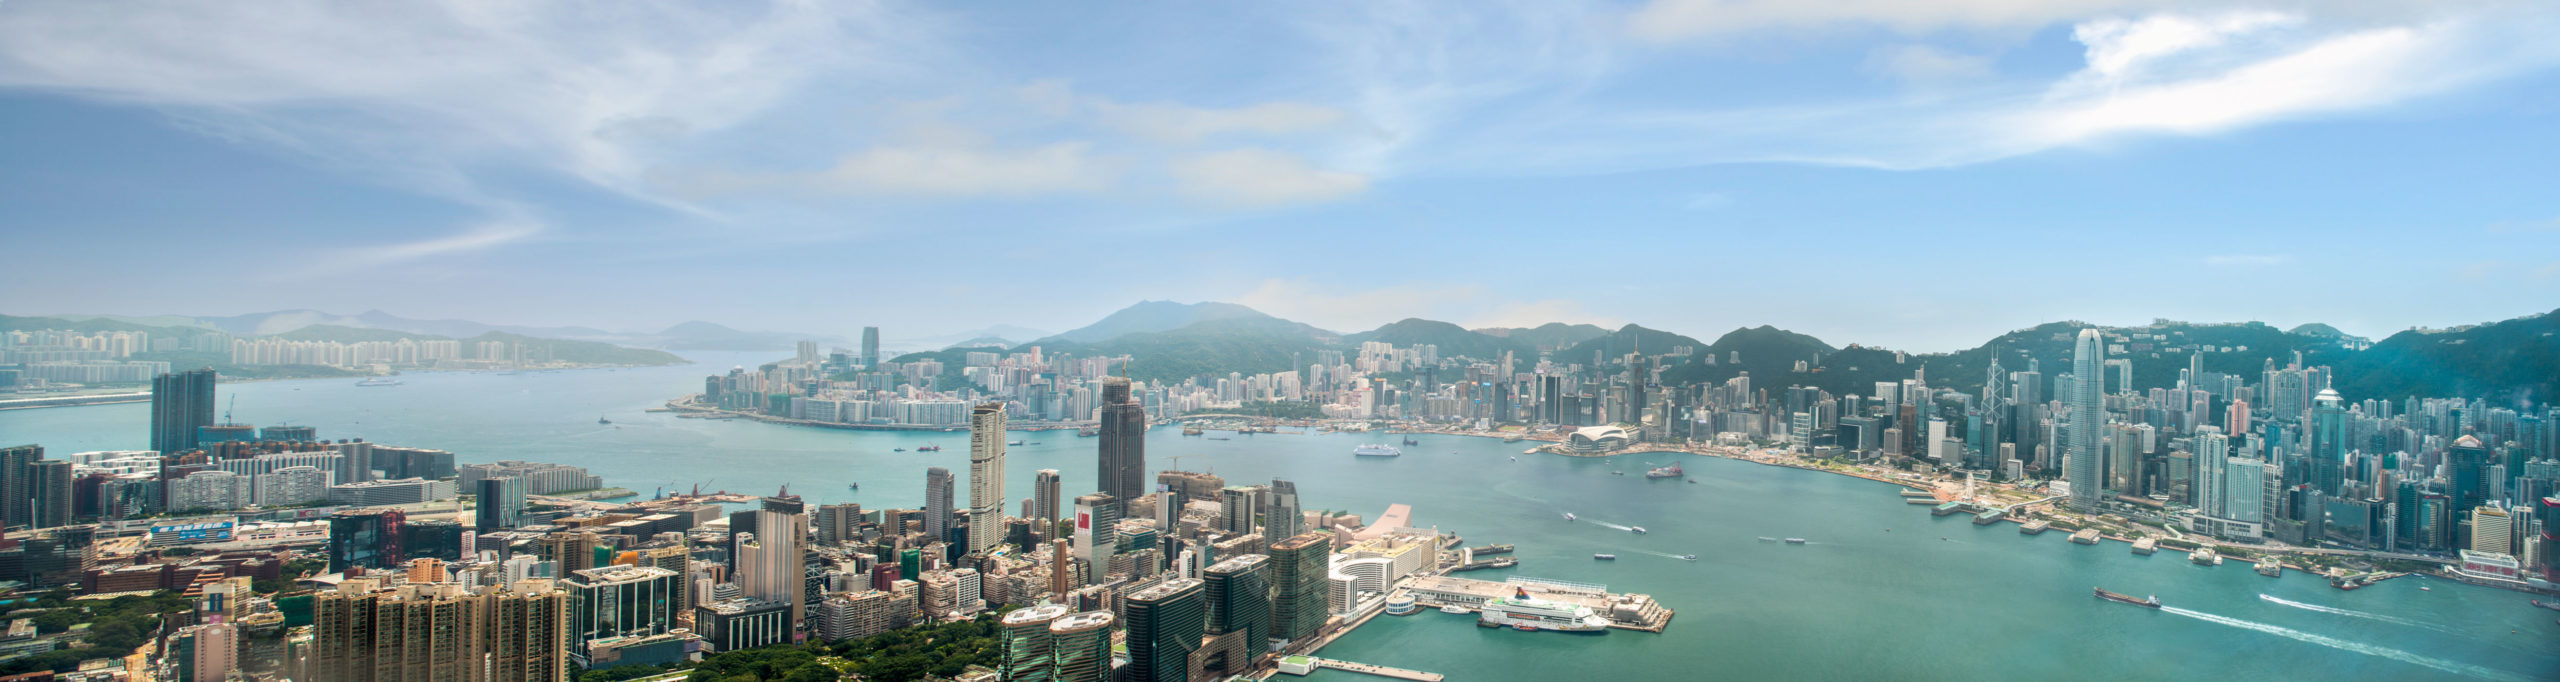 HK-view-at-Day-02